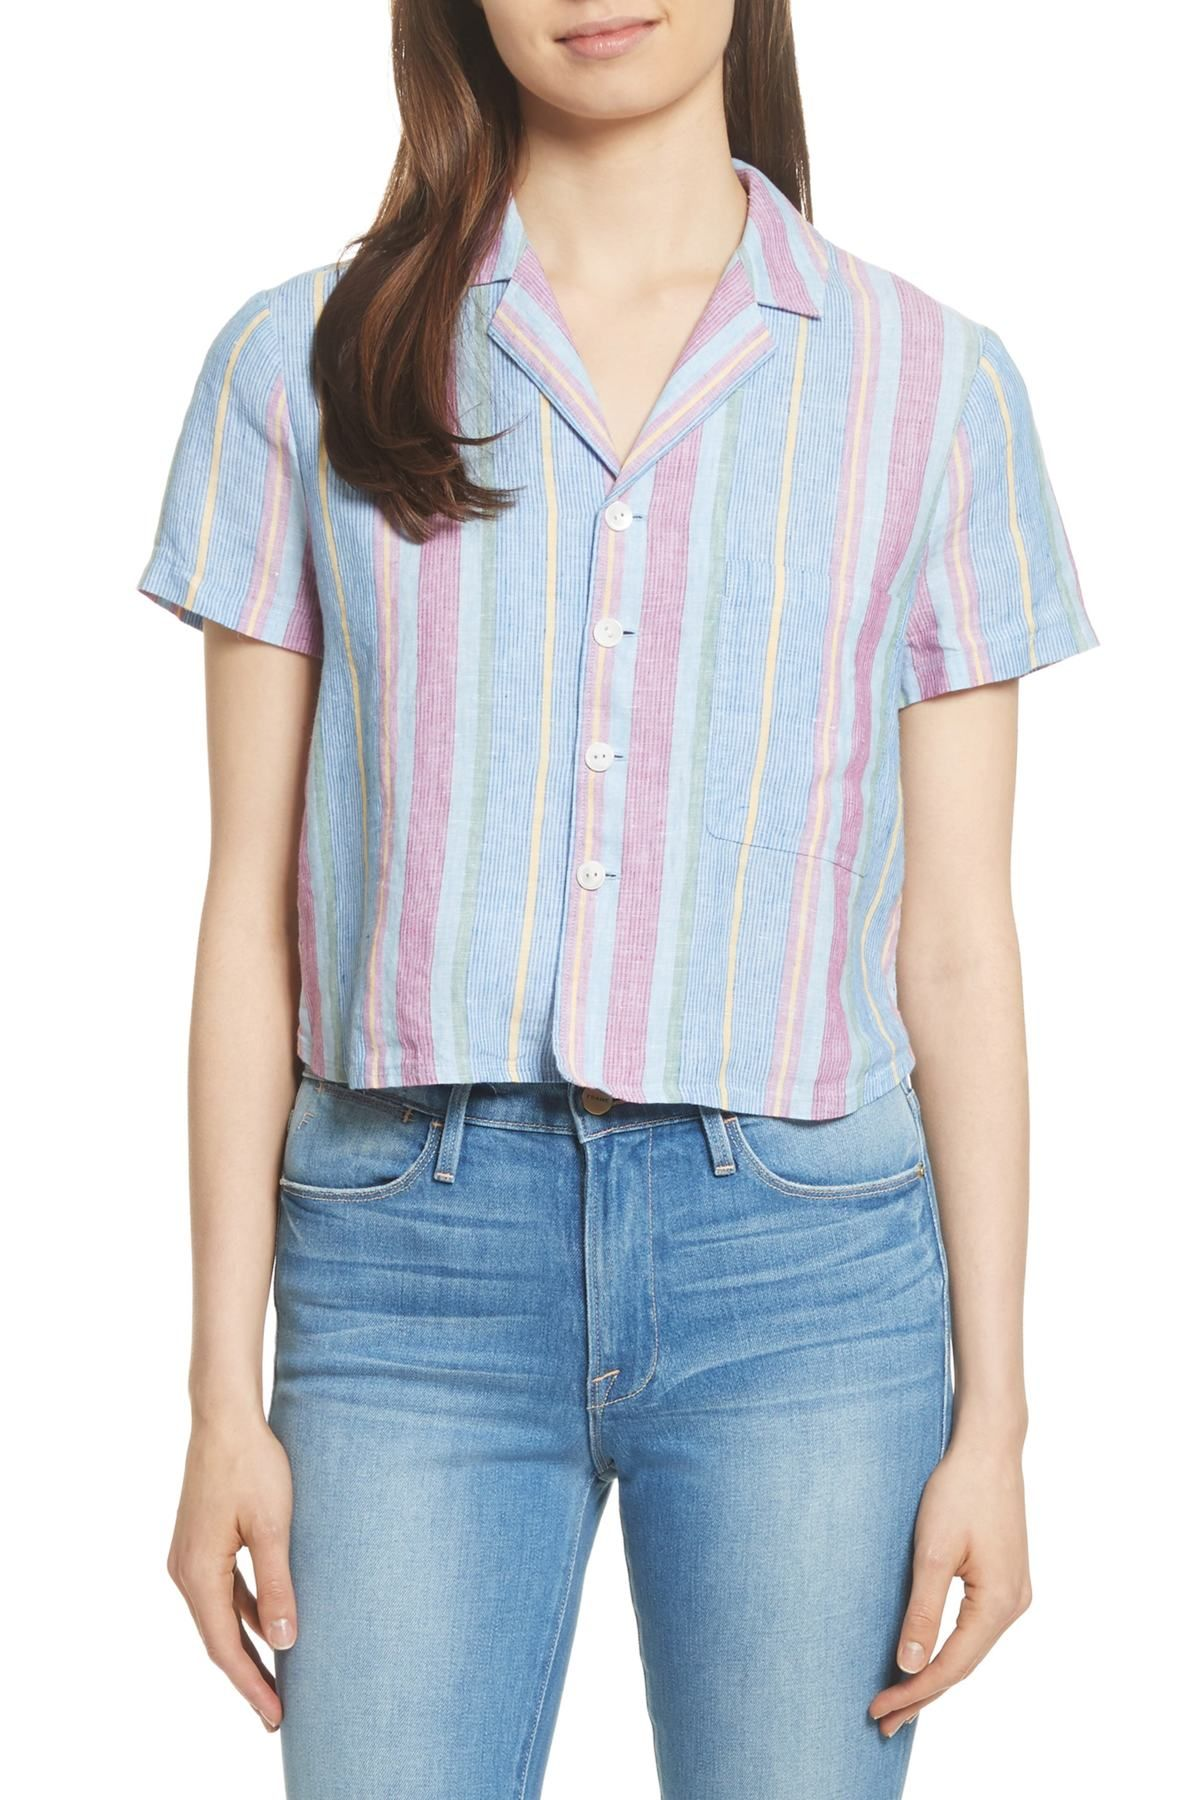 ab79eecd4e Image of Frame Denim Stripe High Low Linen Shirt